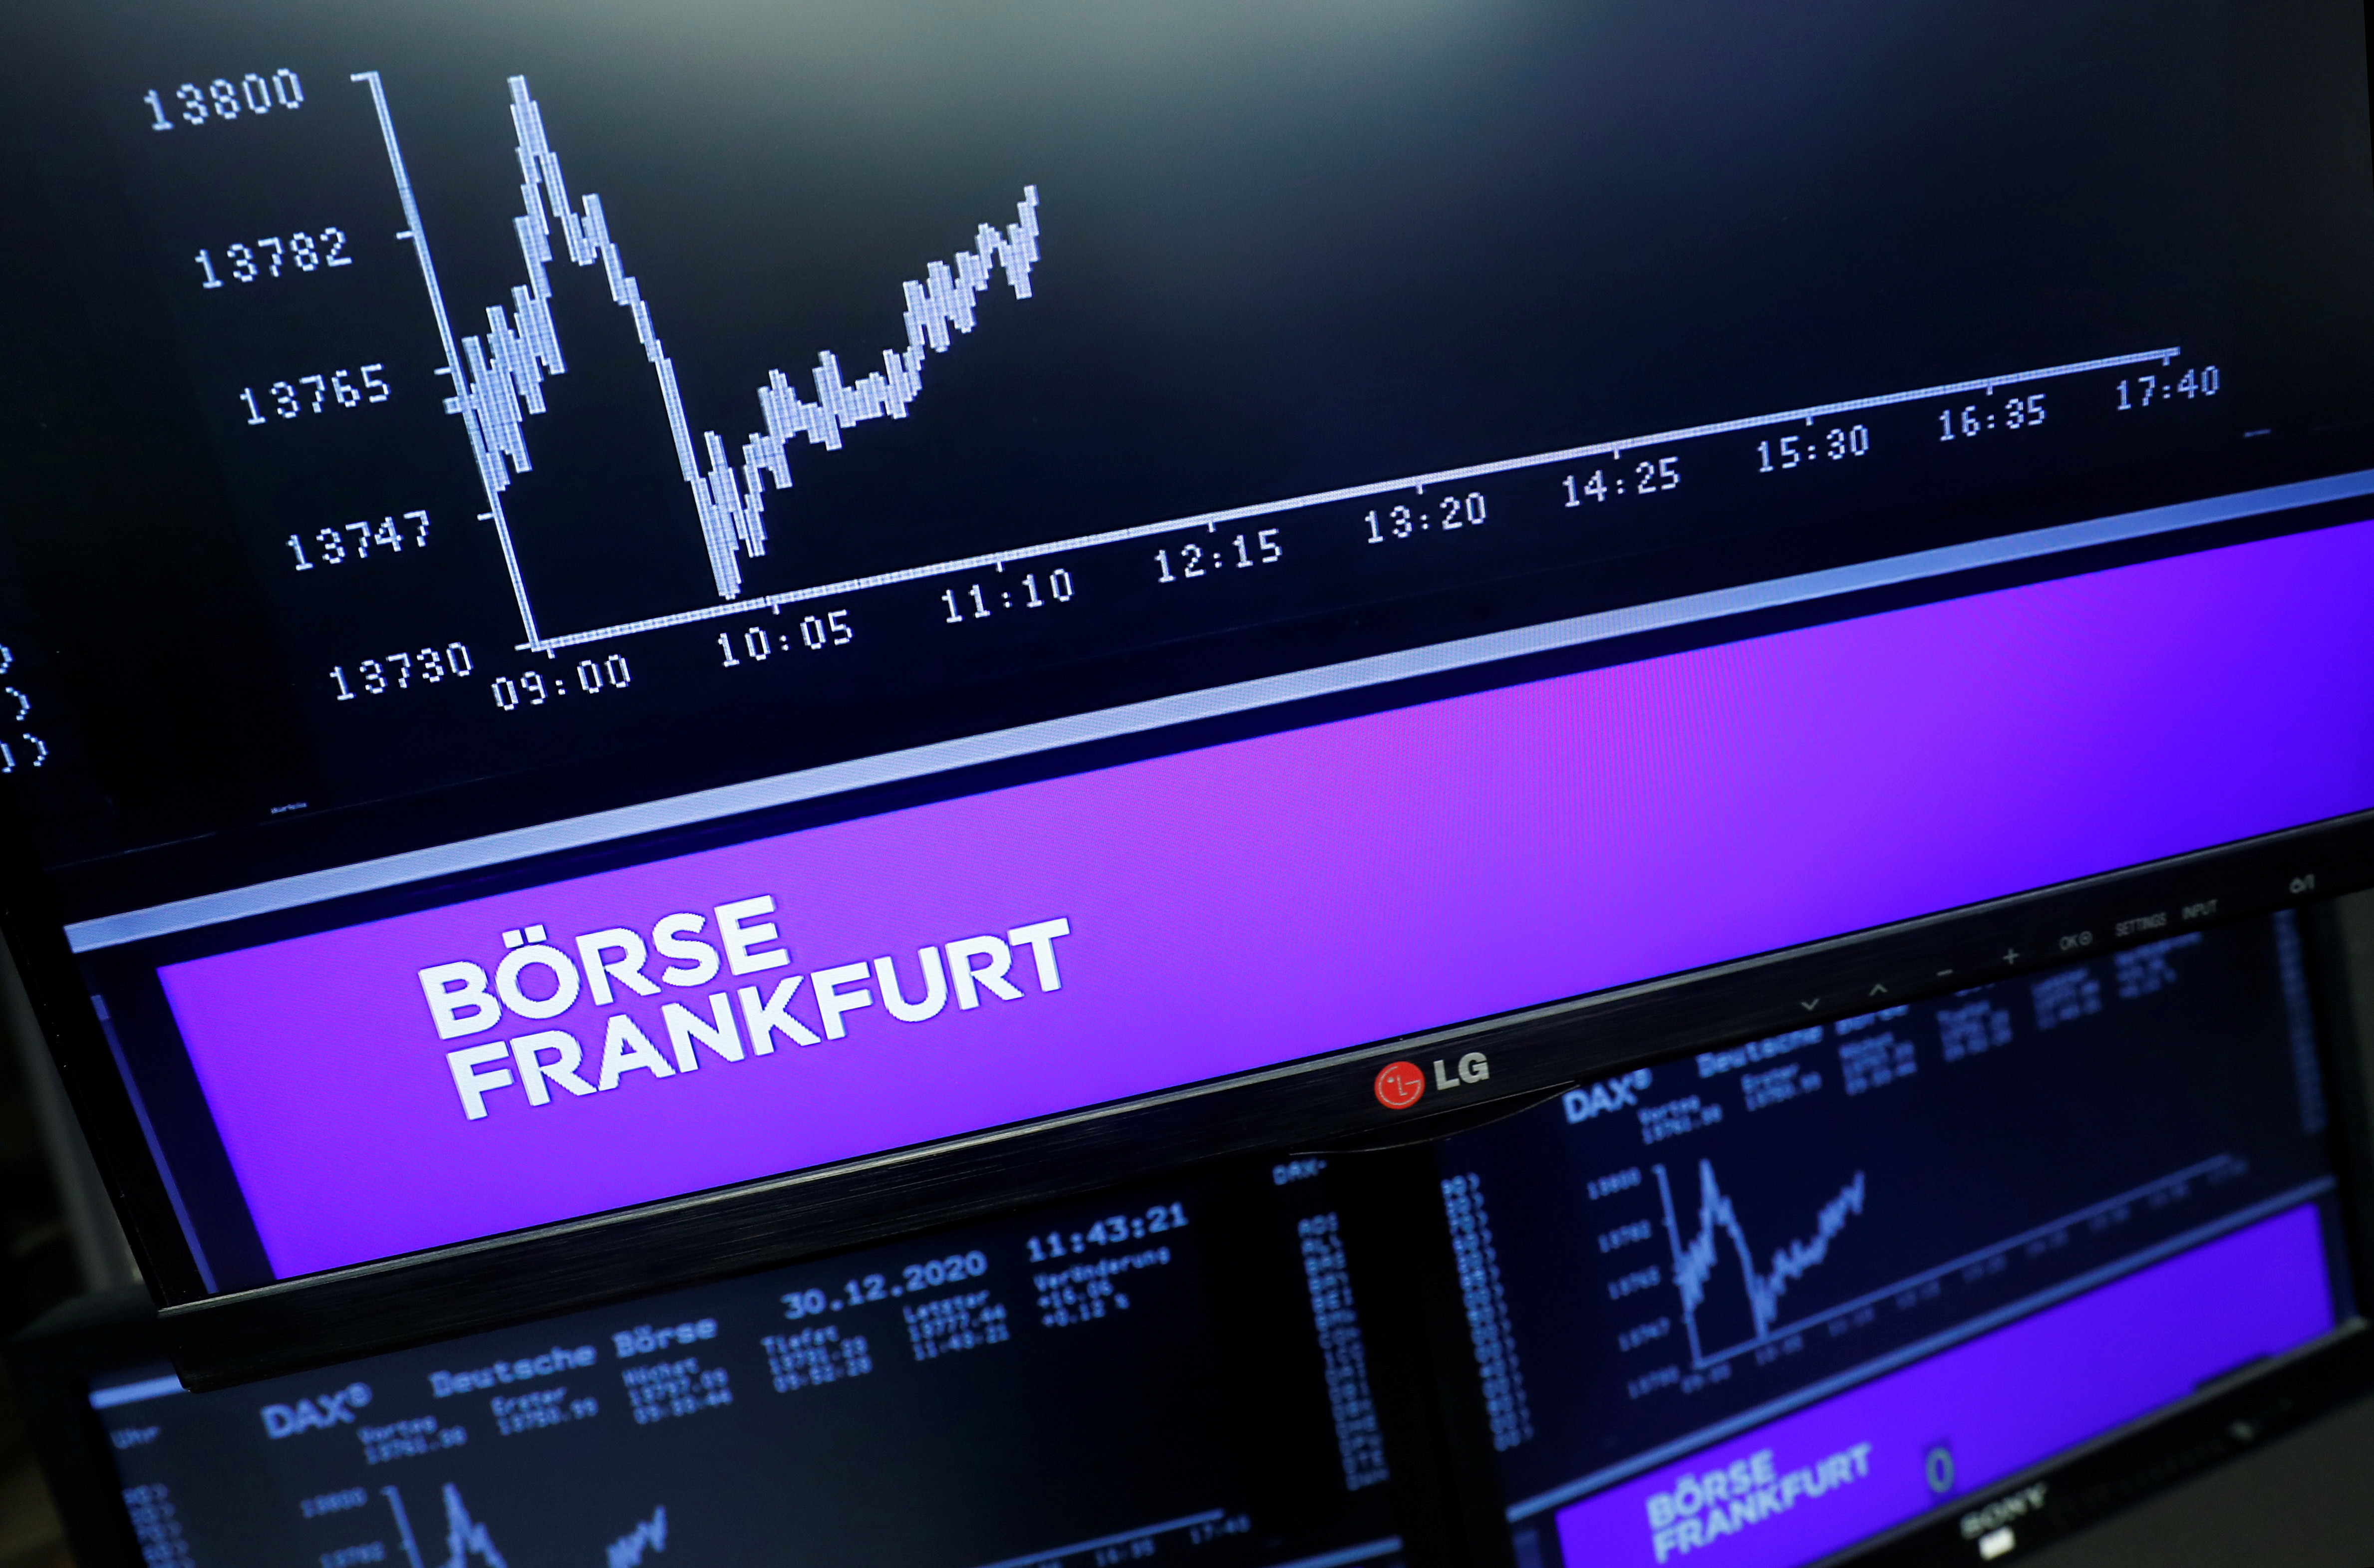 TV screens show the German DAX Index during a trading session at the Frankfurt stock exchange, amid the coronavirus disease (COVID-19) outbreak, in Frankfurt, Germany, December 30, 2020. REUTERS/Ralph Orlowski